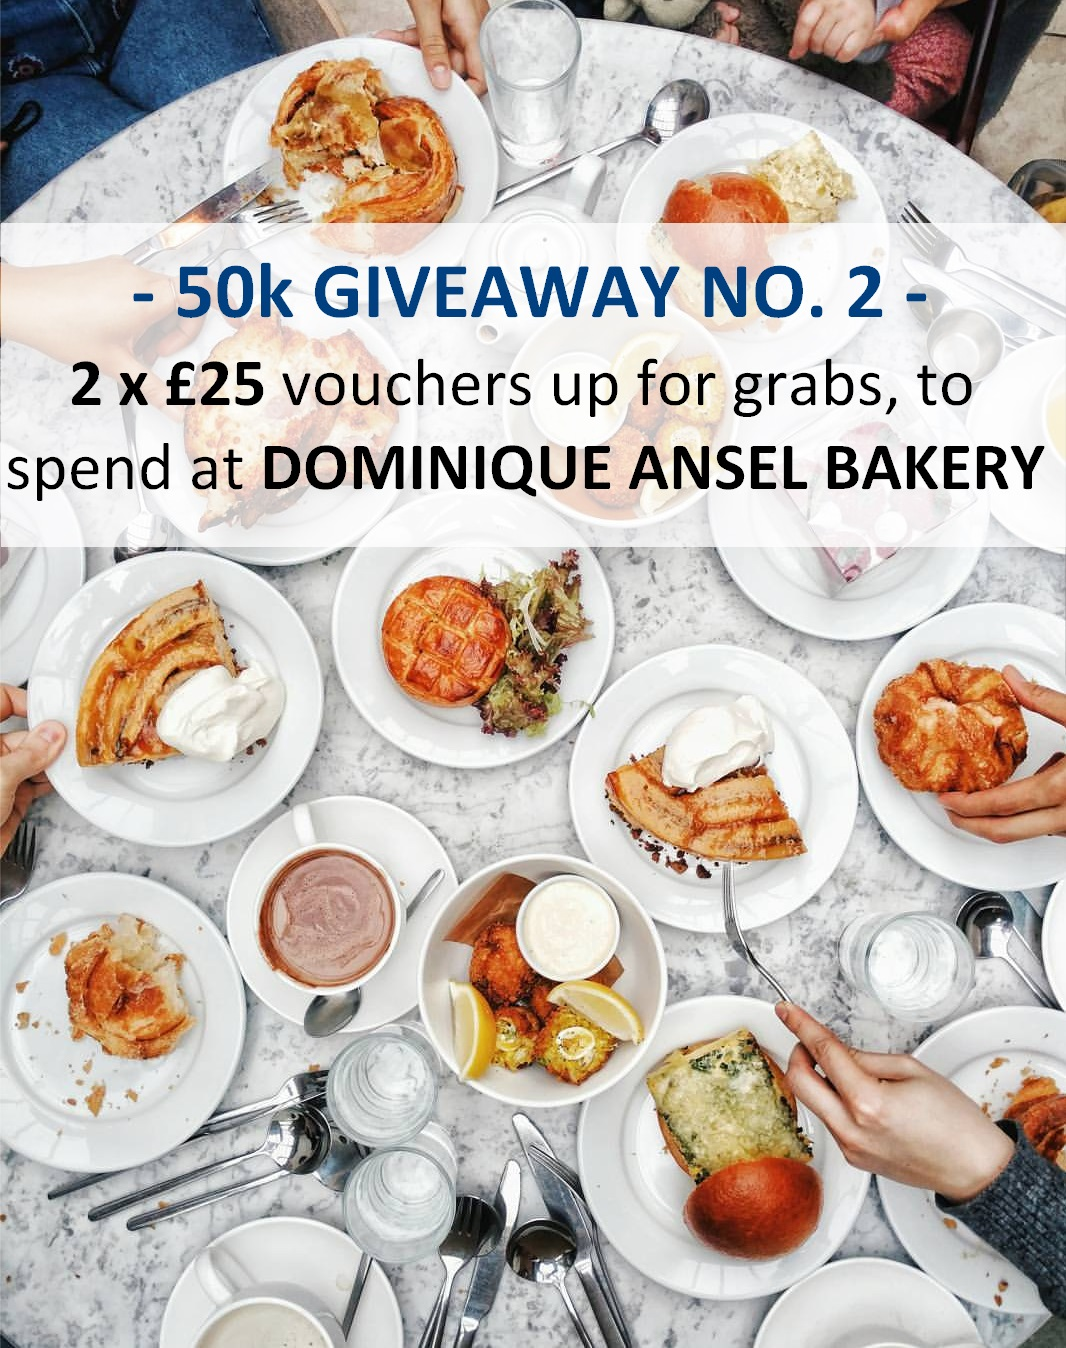 Giveaway 2 - Dominique Ansel.jpg